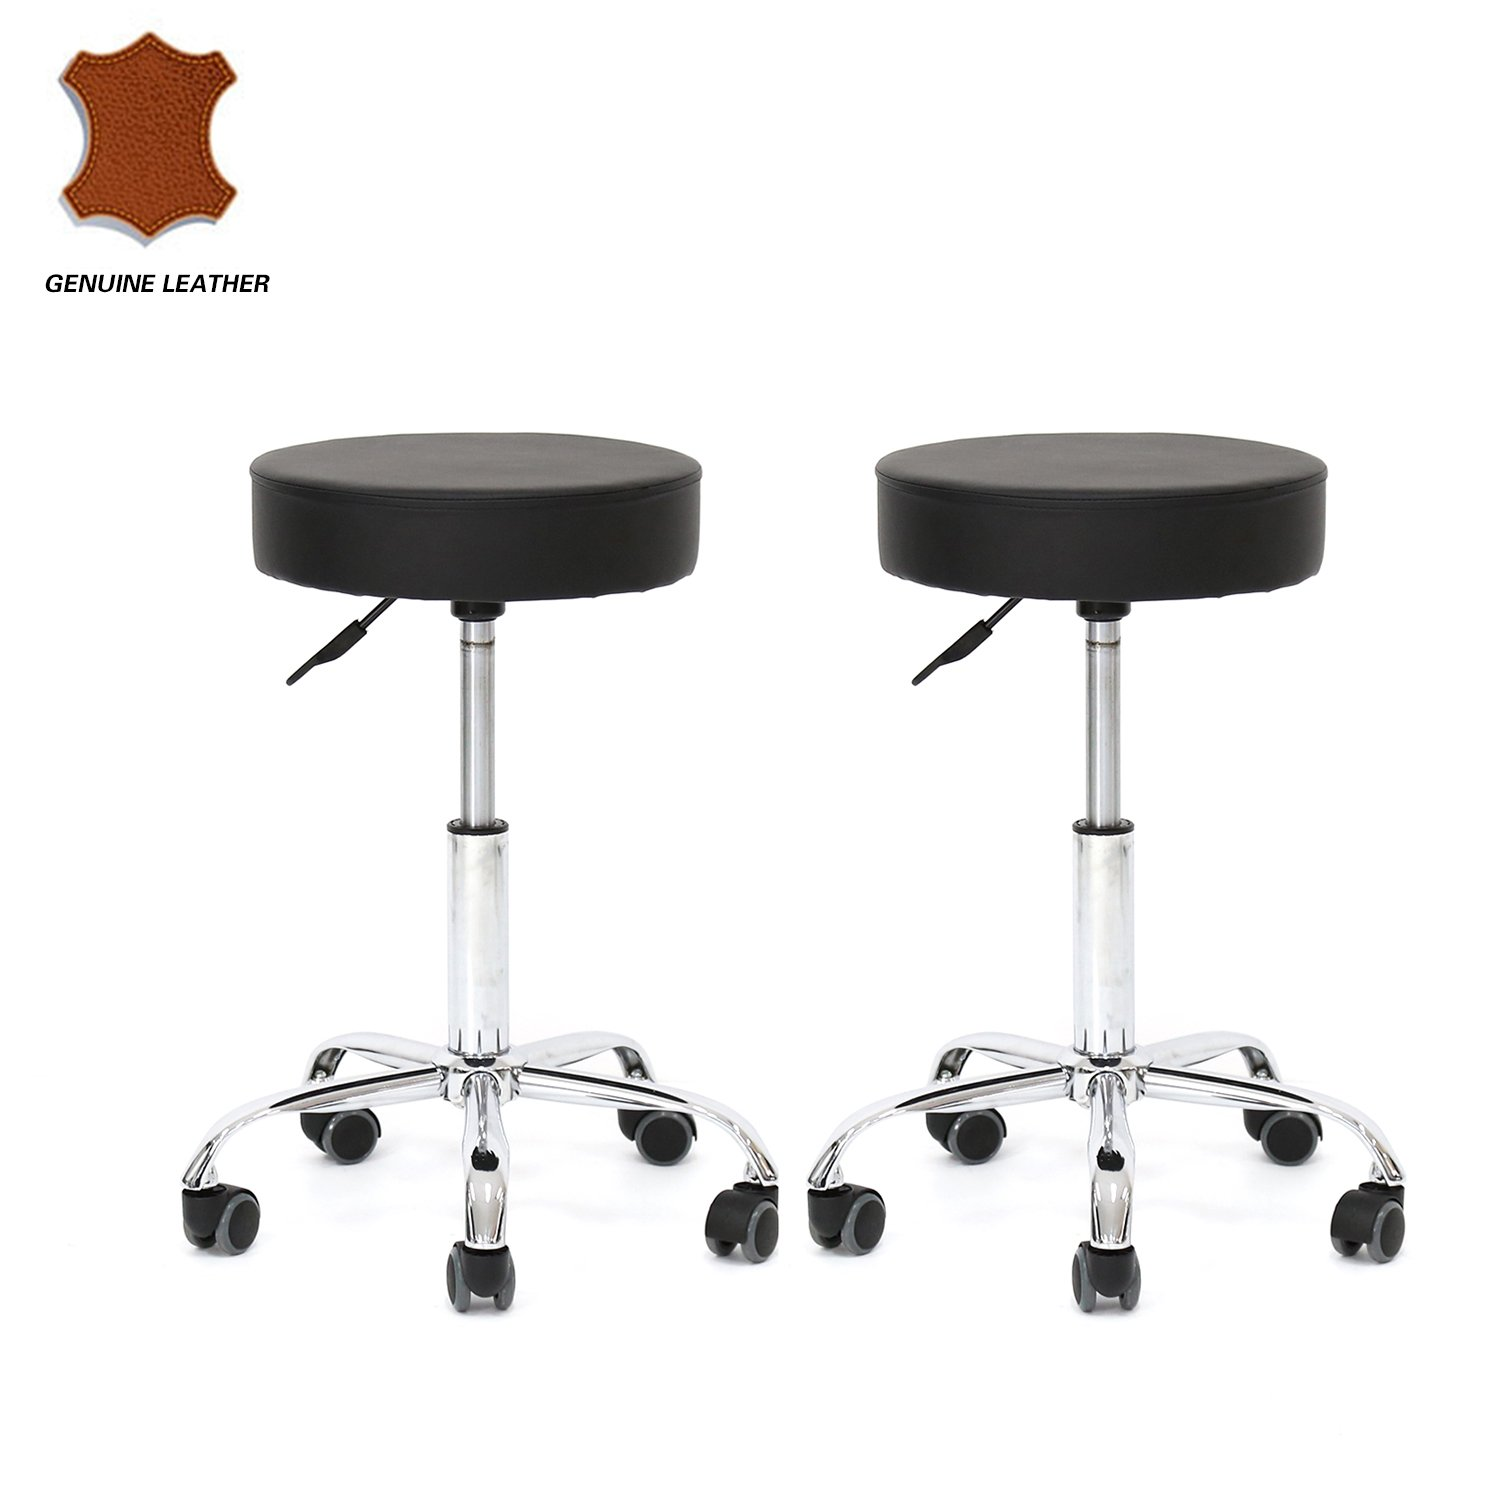 Kinbor Set of 2 Genuine Leather Adjustable Hydraulic Rolling Swivel Bar Stool Tattoo Facial Massage Spa Stool Chairs (Black)